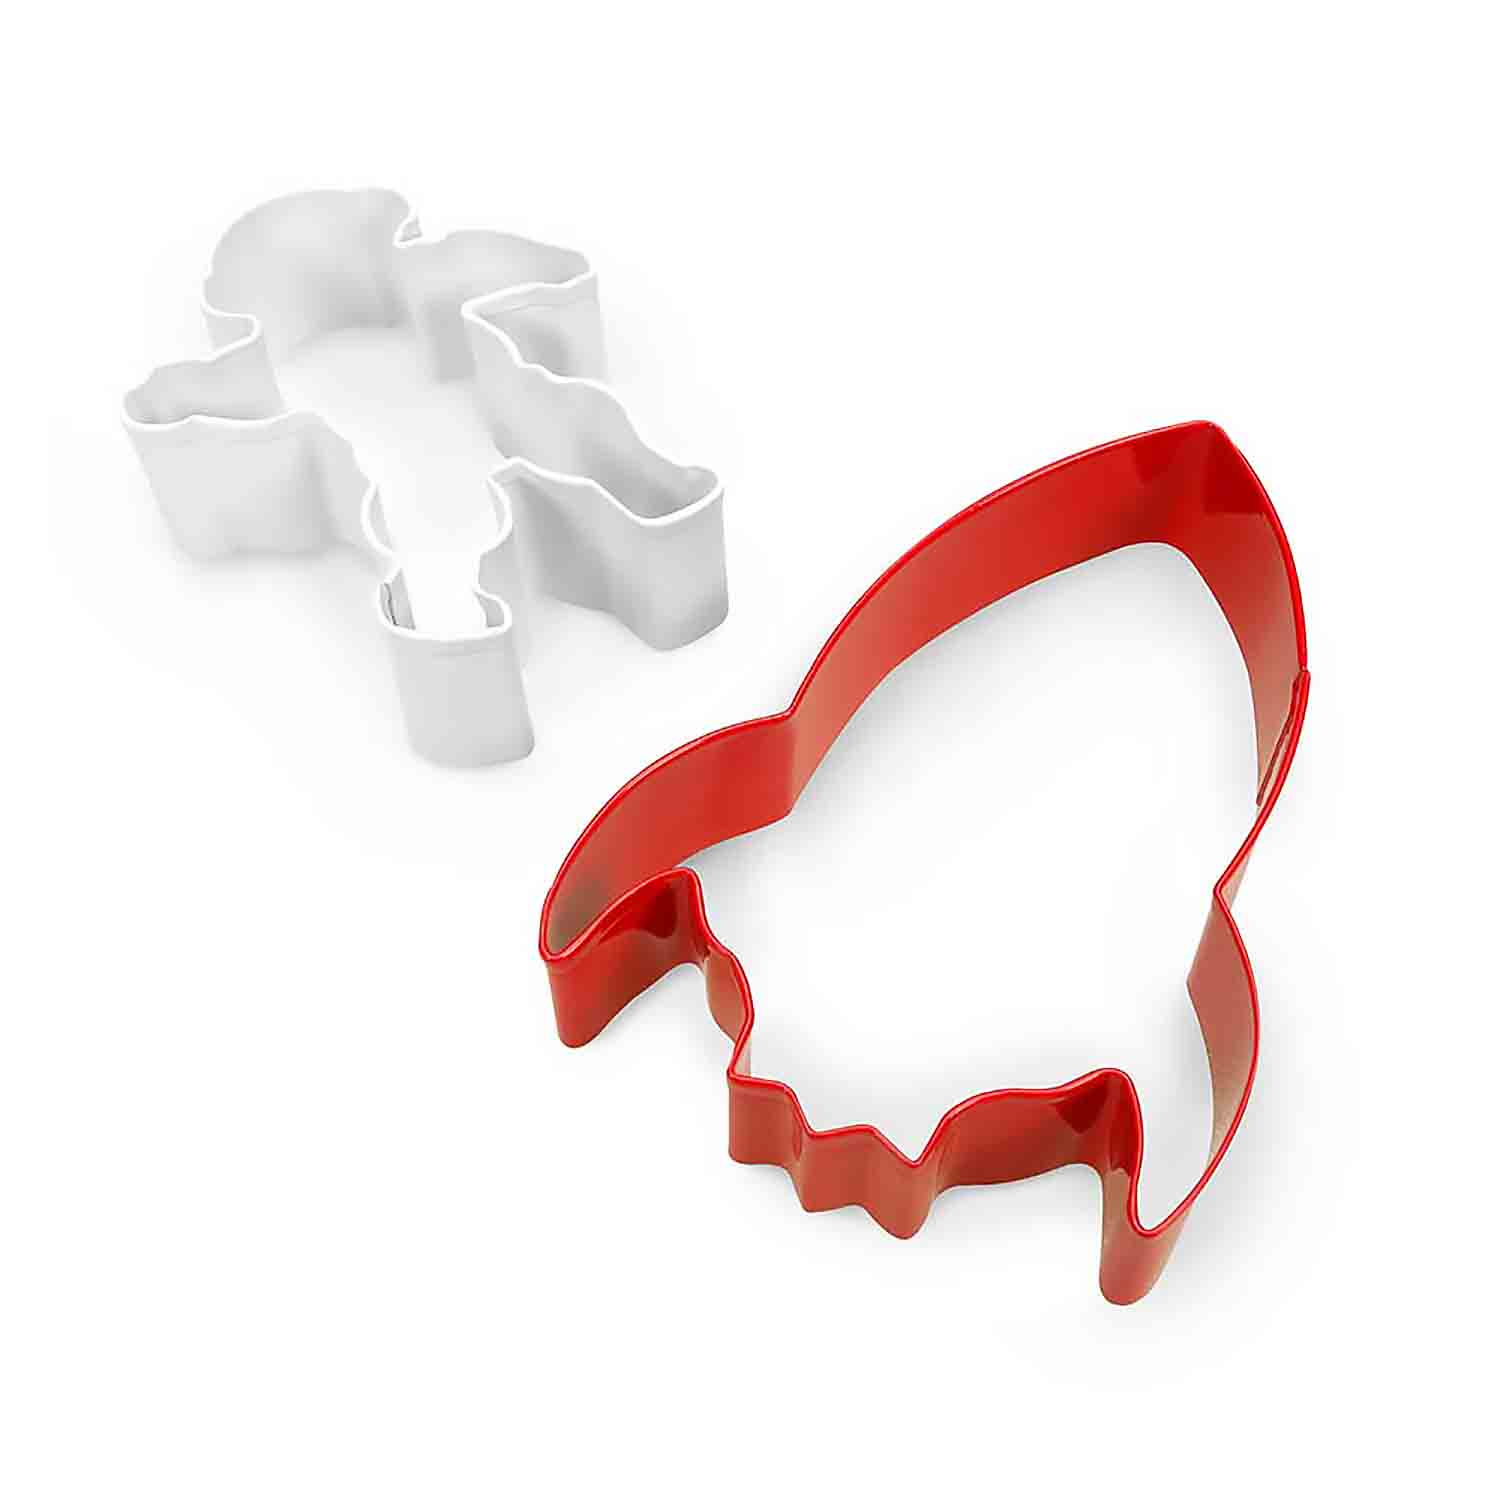 Rocket Cookie Cutter Set